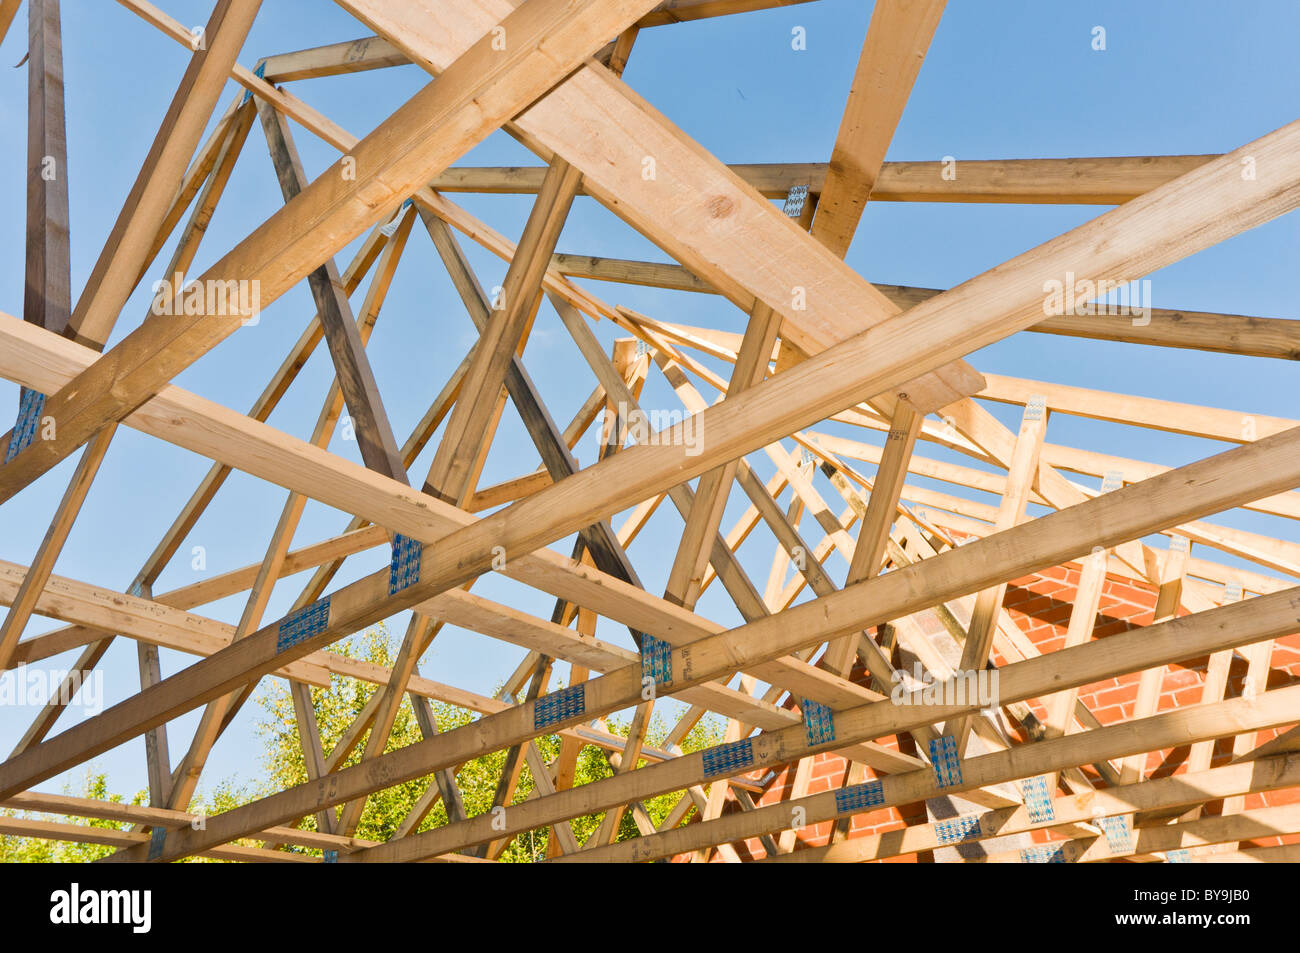 Architecture roof trusses stock photo royalty free image for Where to buy trusses